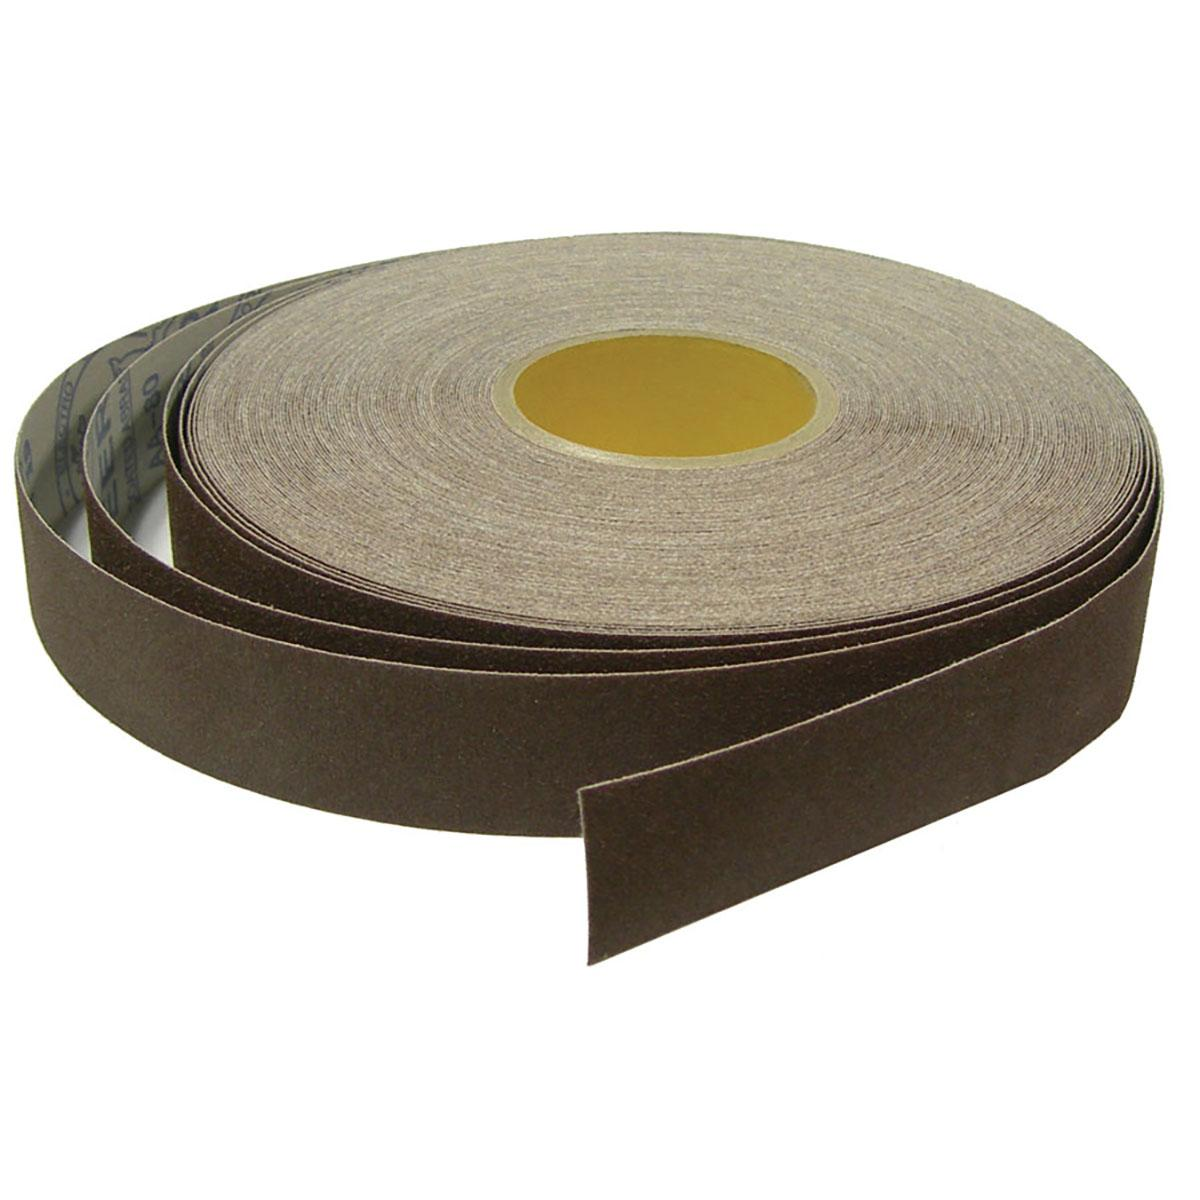 "1-1/2"" X 120AO SHOP ROLL 50 YD"